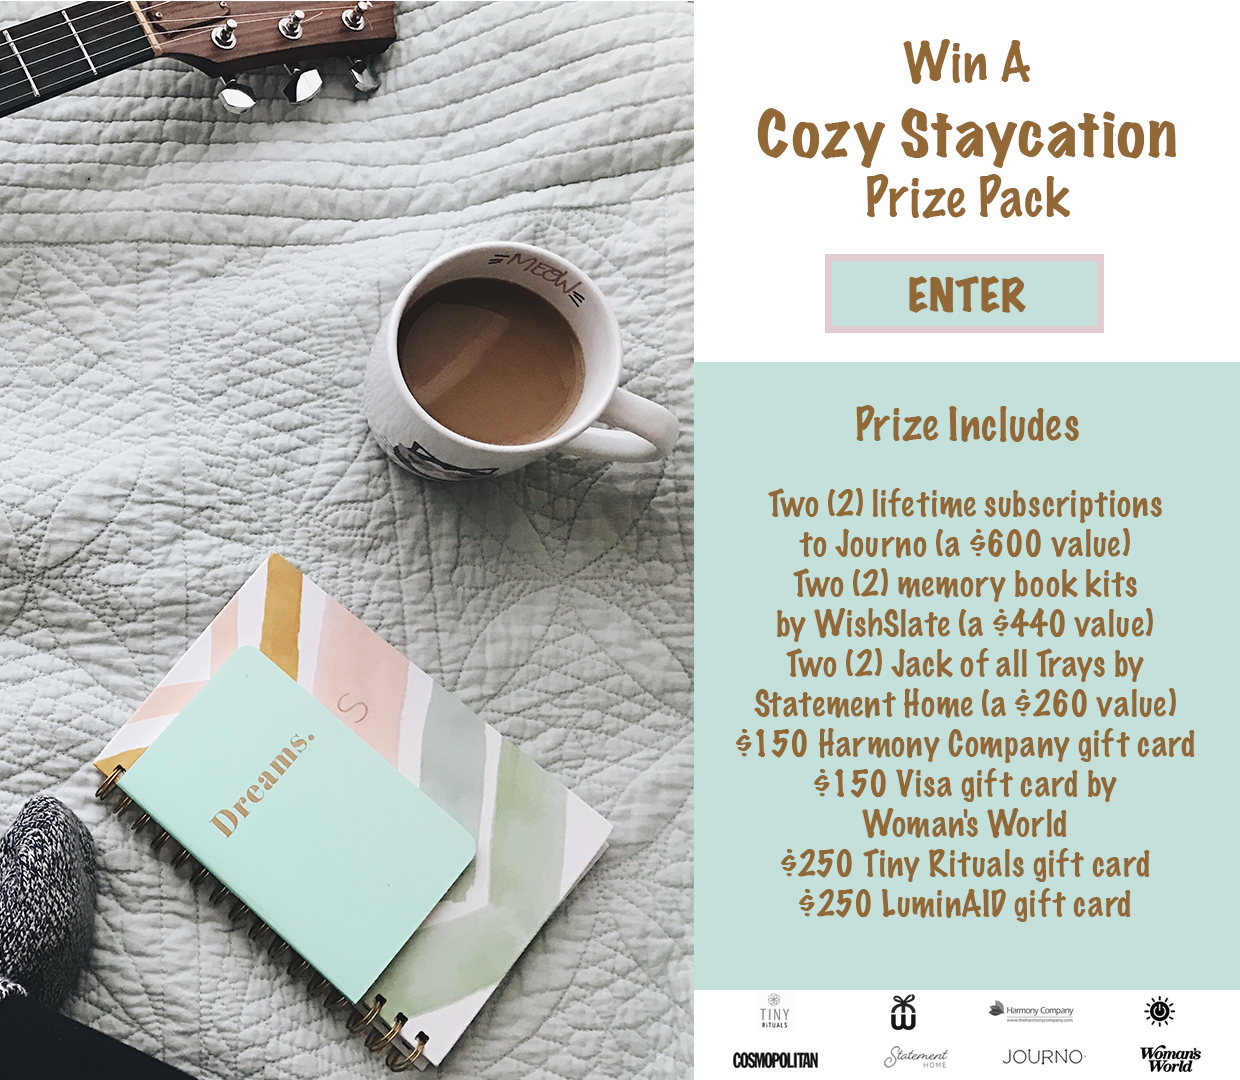 Enter for a chance to win 2 lifetime subscriptions to Journo valued at $600, 2 memory book kits by WishSlate valued at $440, 2 Jack of all Trays by Statement Home valued at $260, a $150 gift card to The Harmony Company, a $150 Visa gift card by Woman's World, a $250 gift card to Tiny Rituals, and a $250 Gift Card to LuminAID